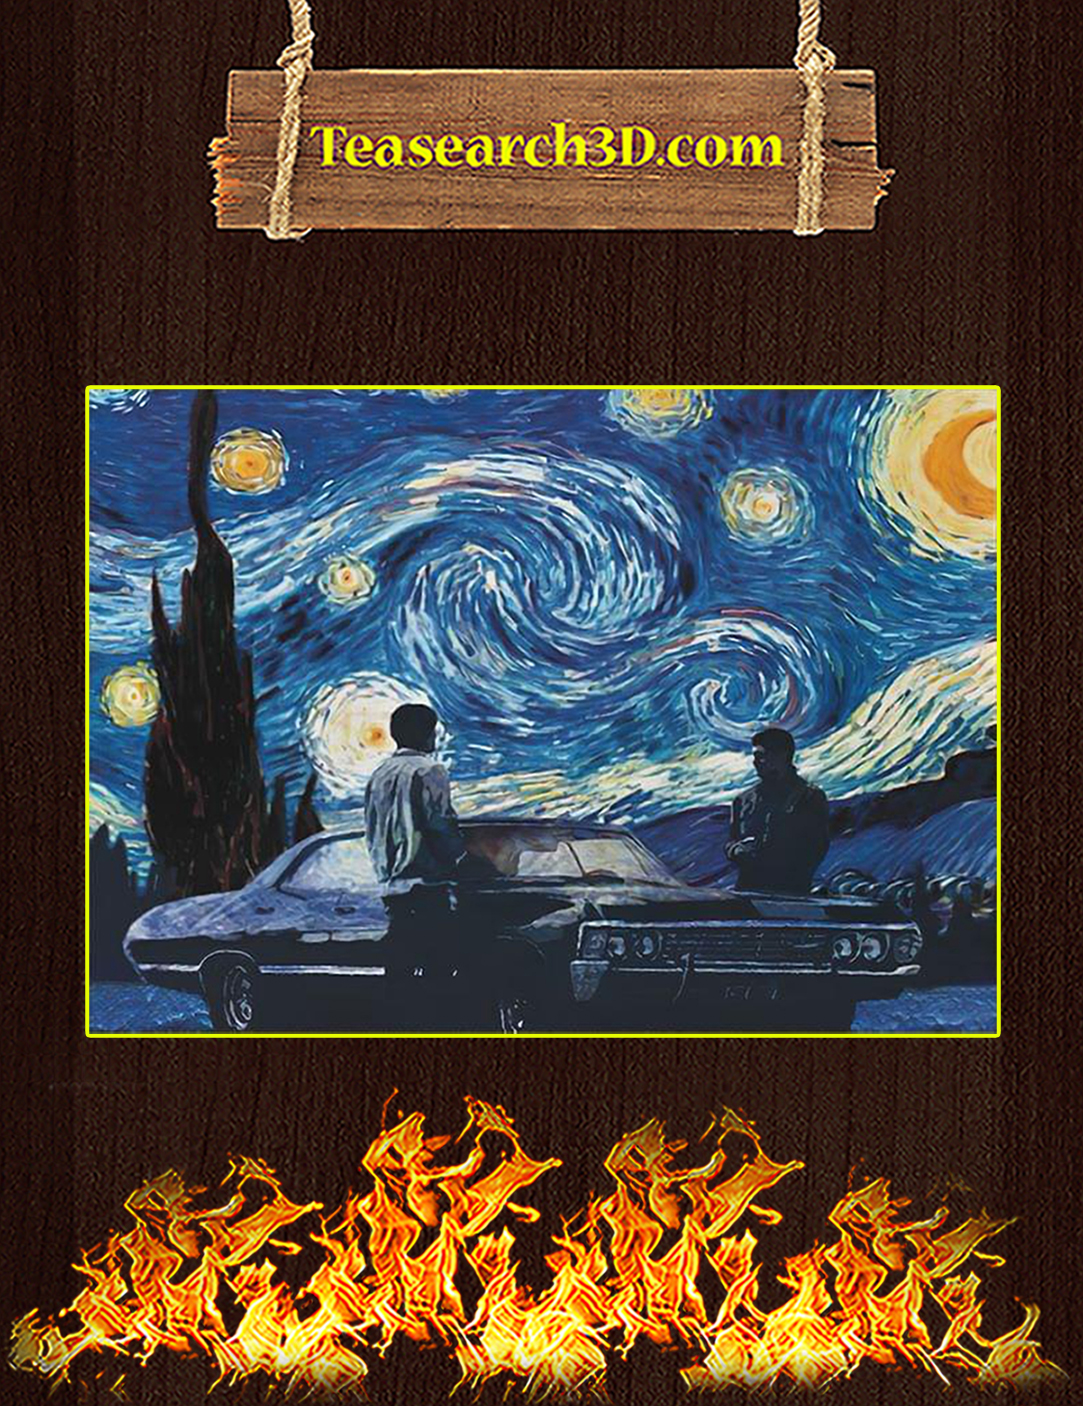 Supernatural starry night van gogh poster A2